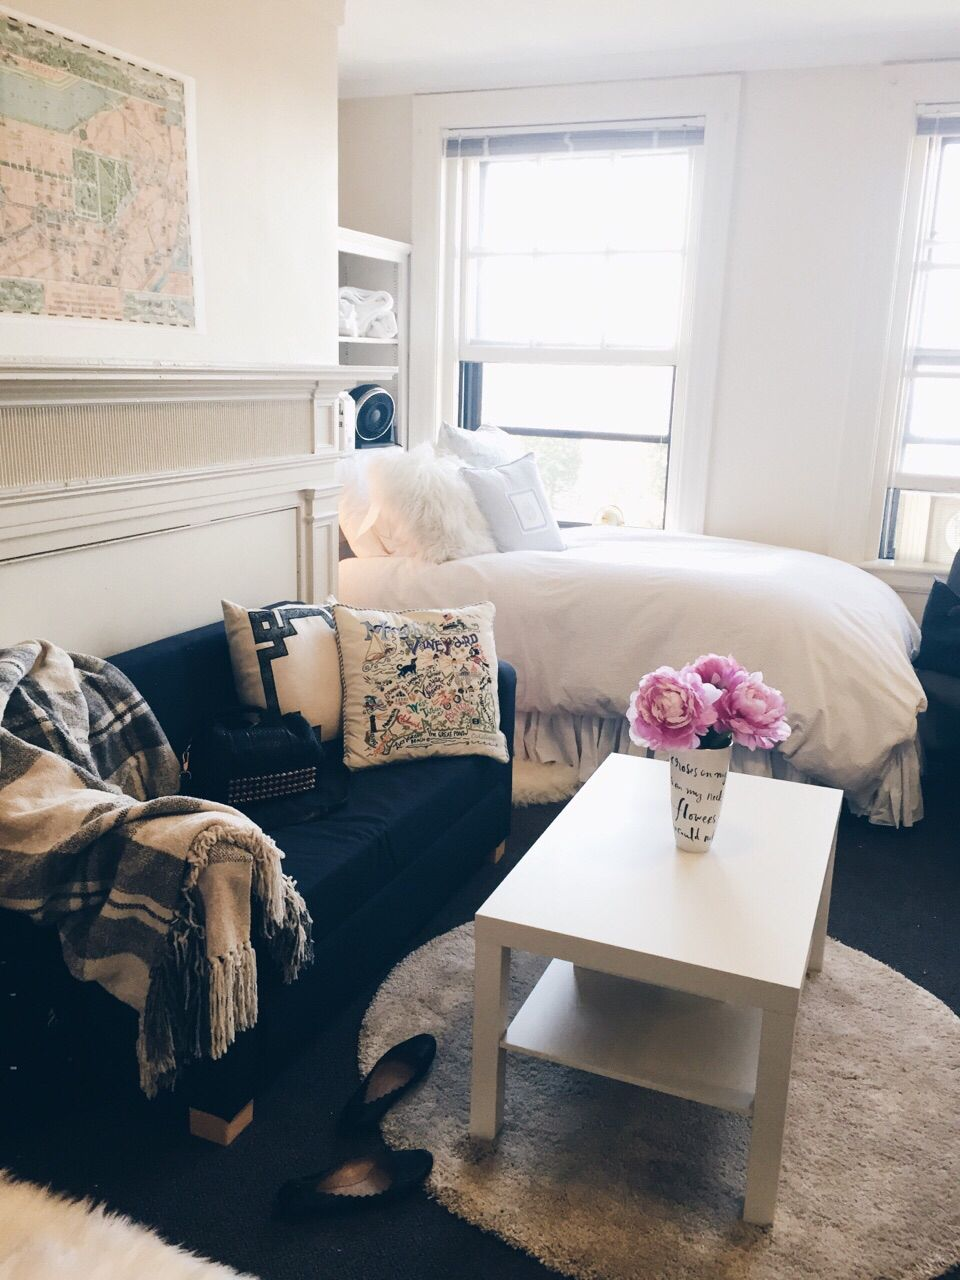 of for living best awesome ut college chattanooga sleeper ideas spaces room sofas futon small size dorm full beautiful pinterest the couch